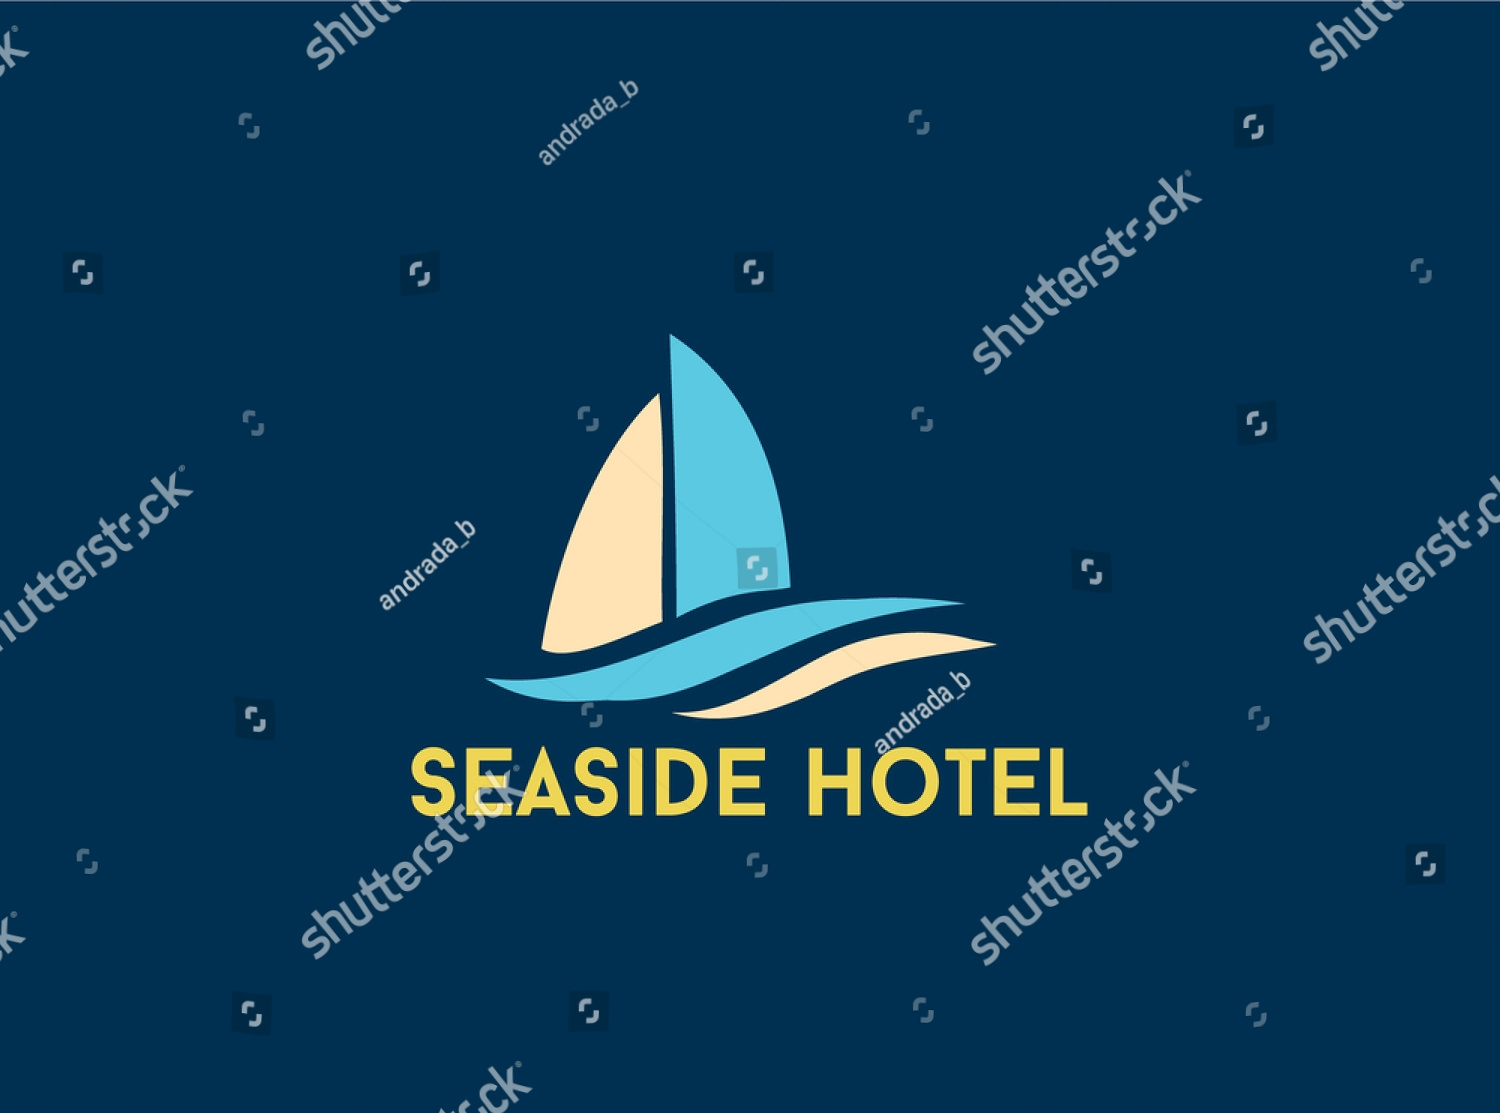 seaside hotel logo